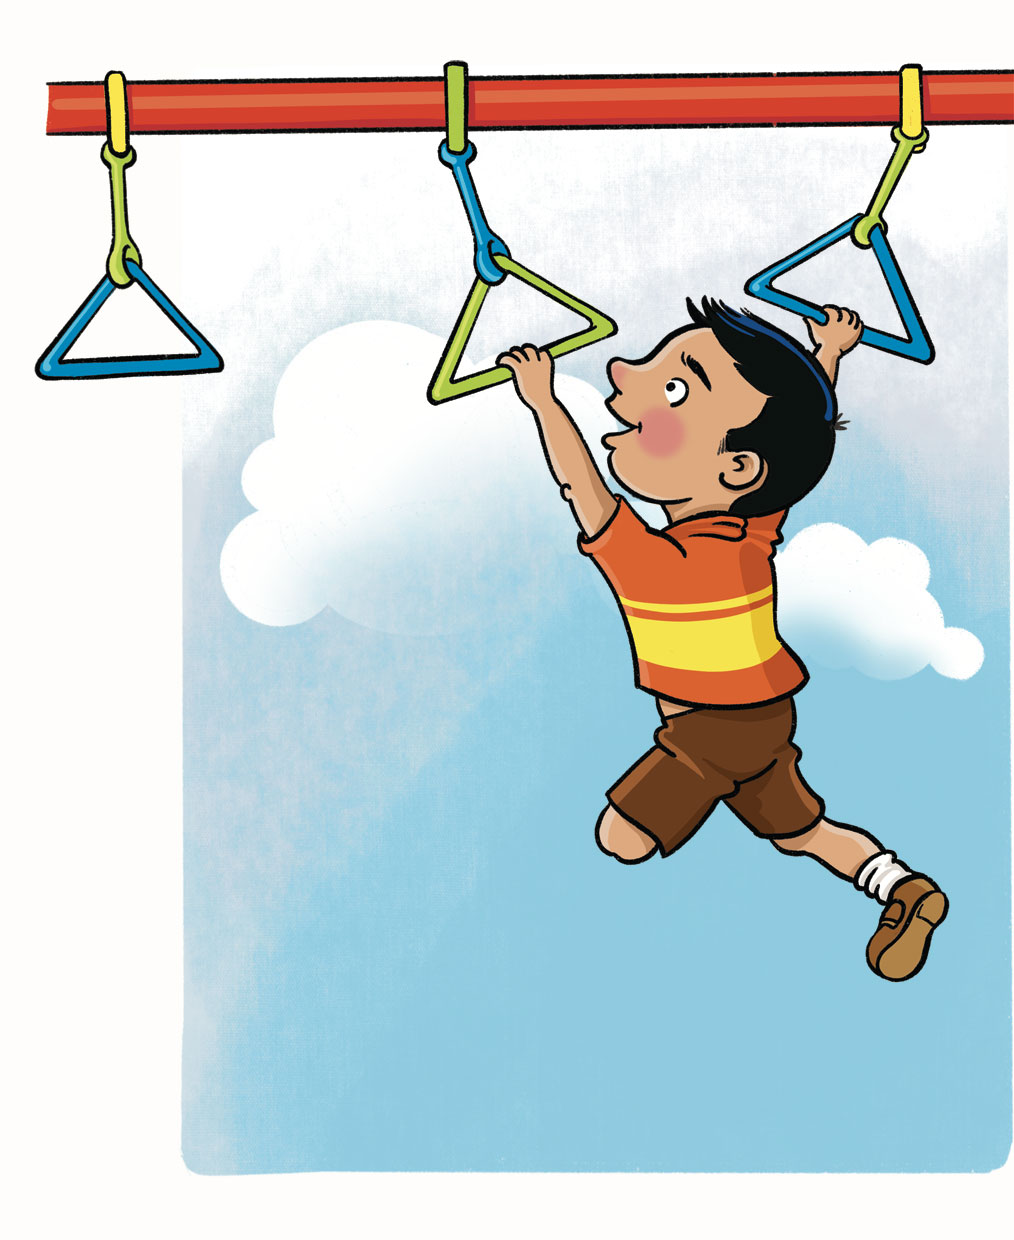 Illustration of a child with one leg amputated at the knee. He is going hand to hand on playground monkeybars.